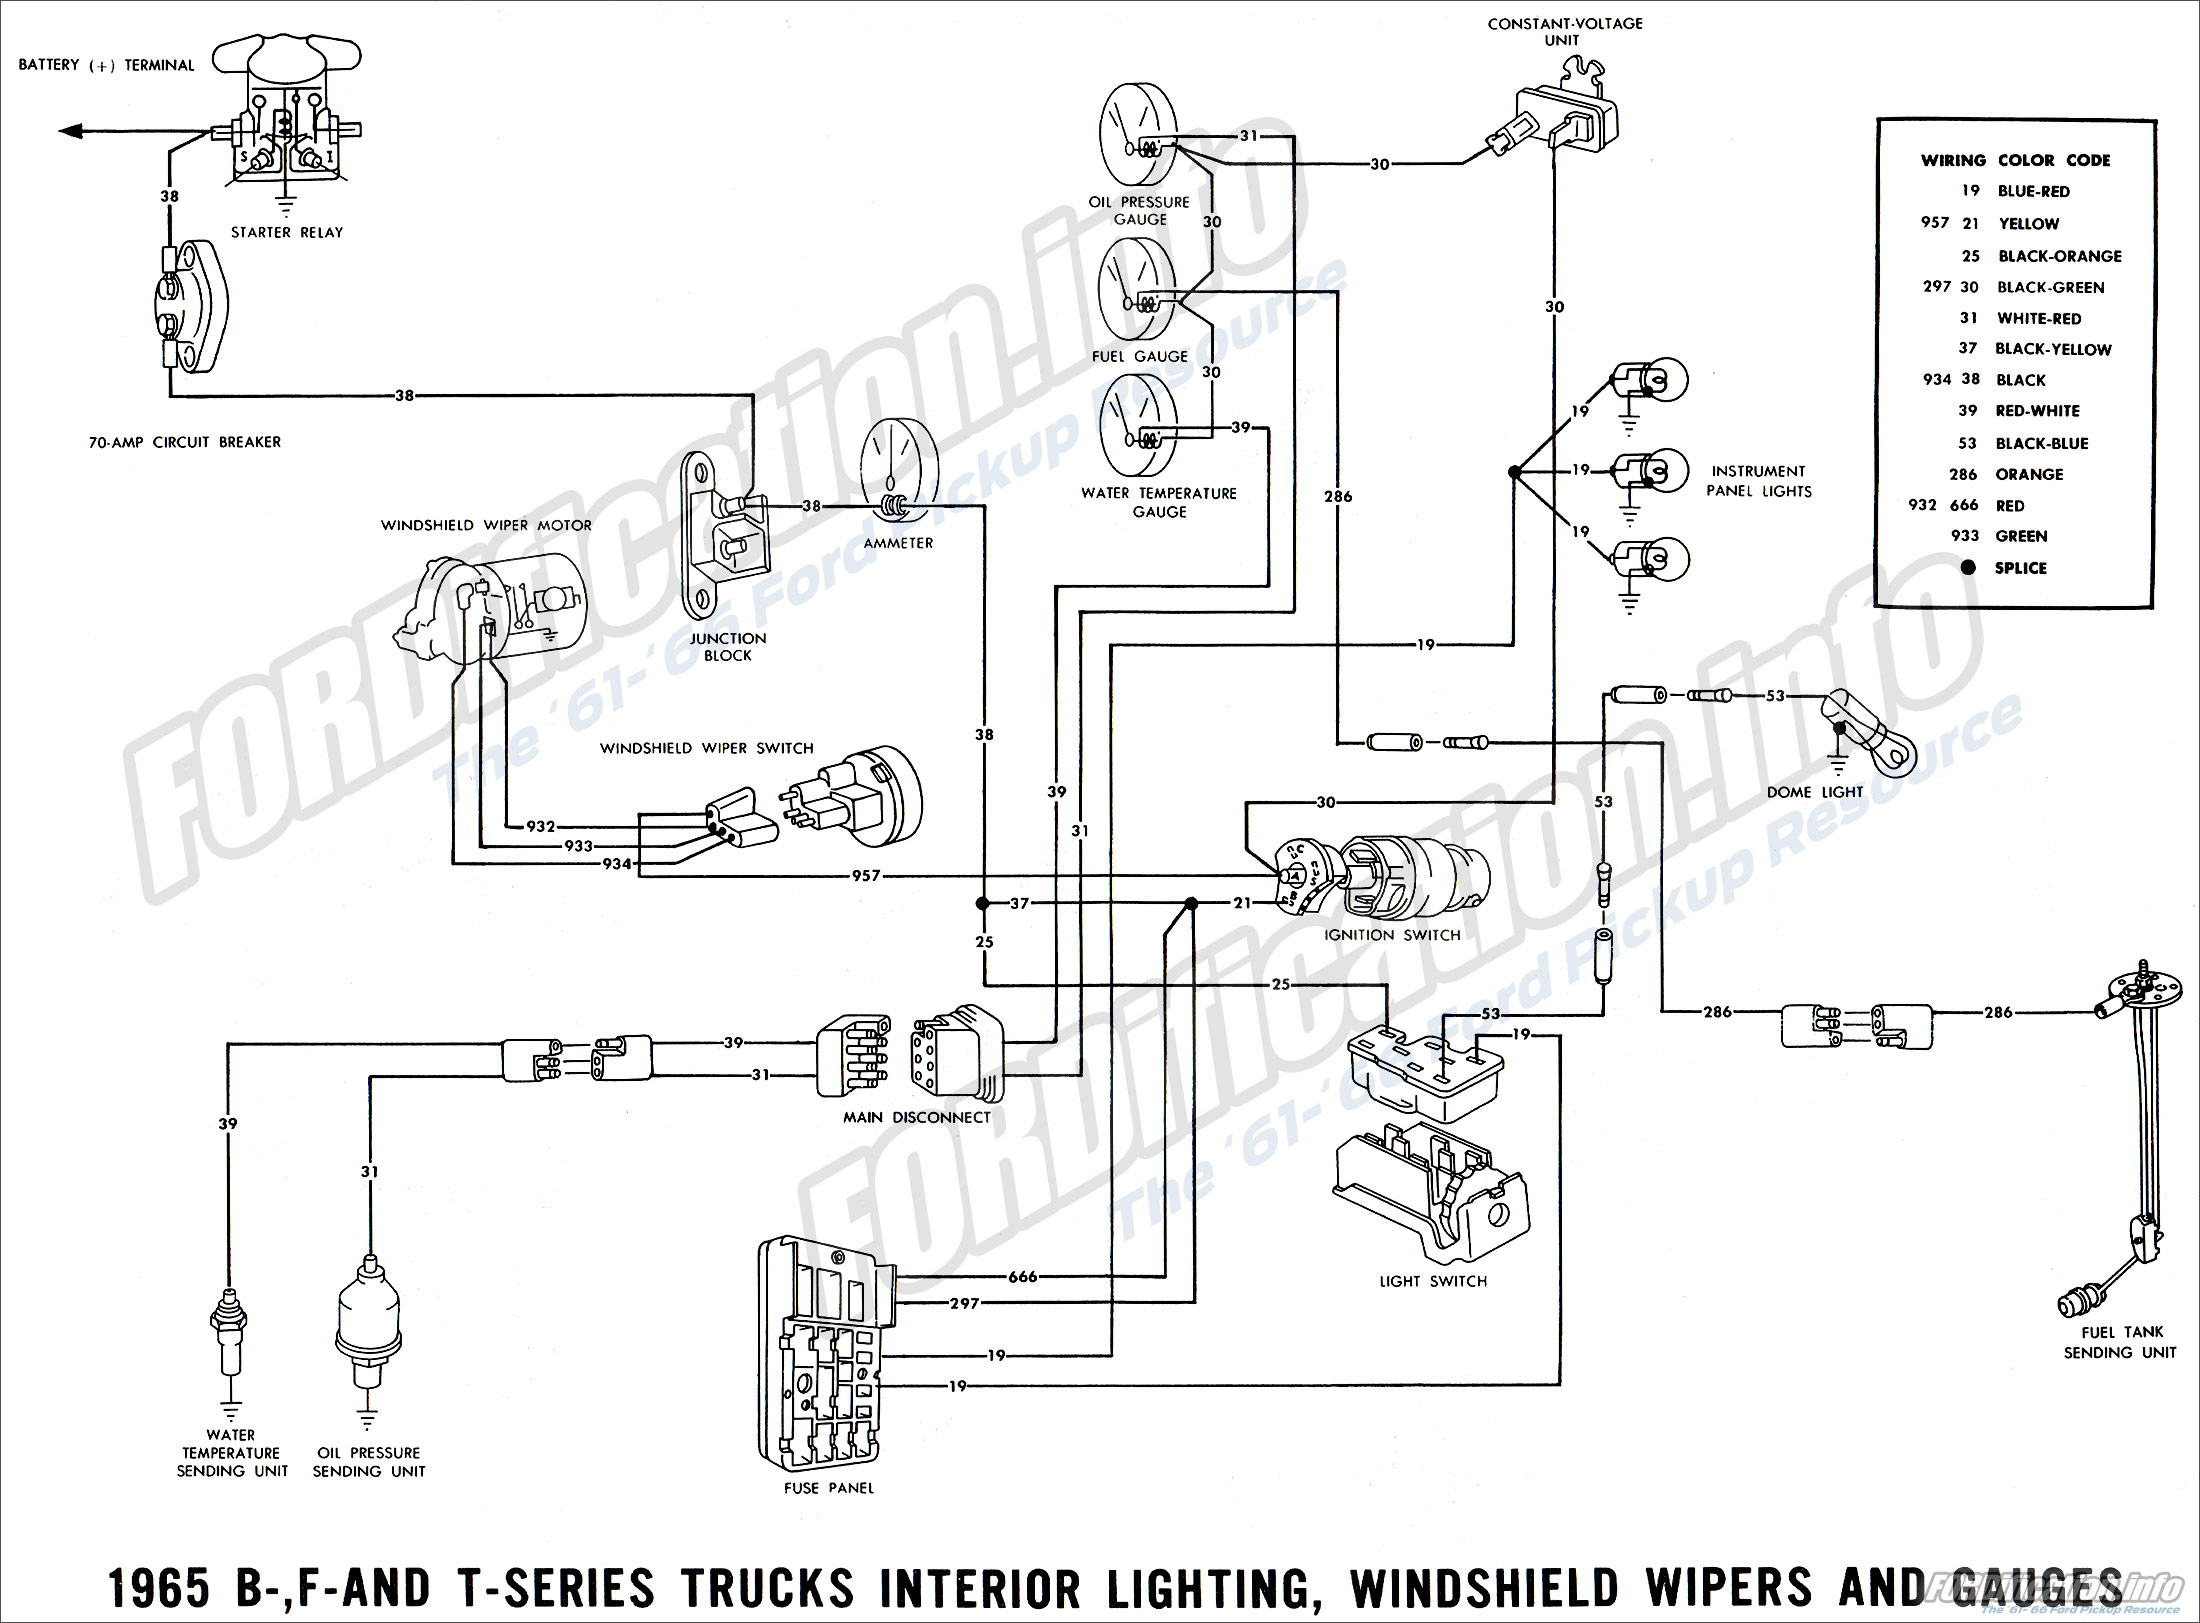 1940 ford wiring diagram wiring diagram online 1950 Cadillac Wiring Diagram wiring diagram for 1961 ford f100 wiring diagram 1940 ford ignition diagram 1940 ford wiring diagram